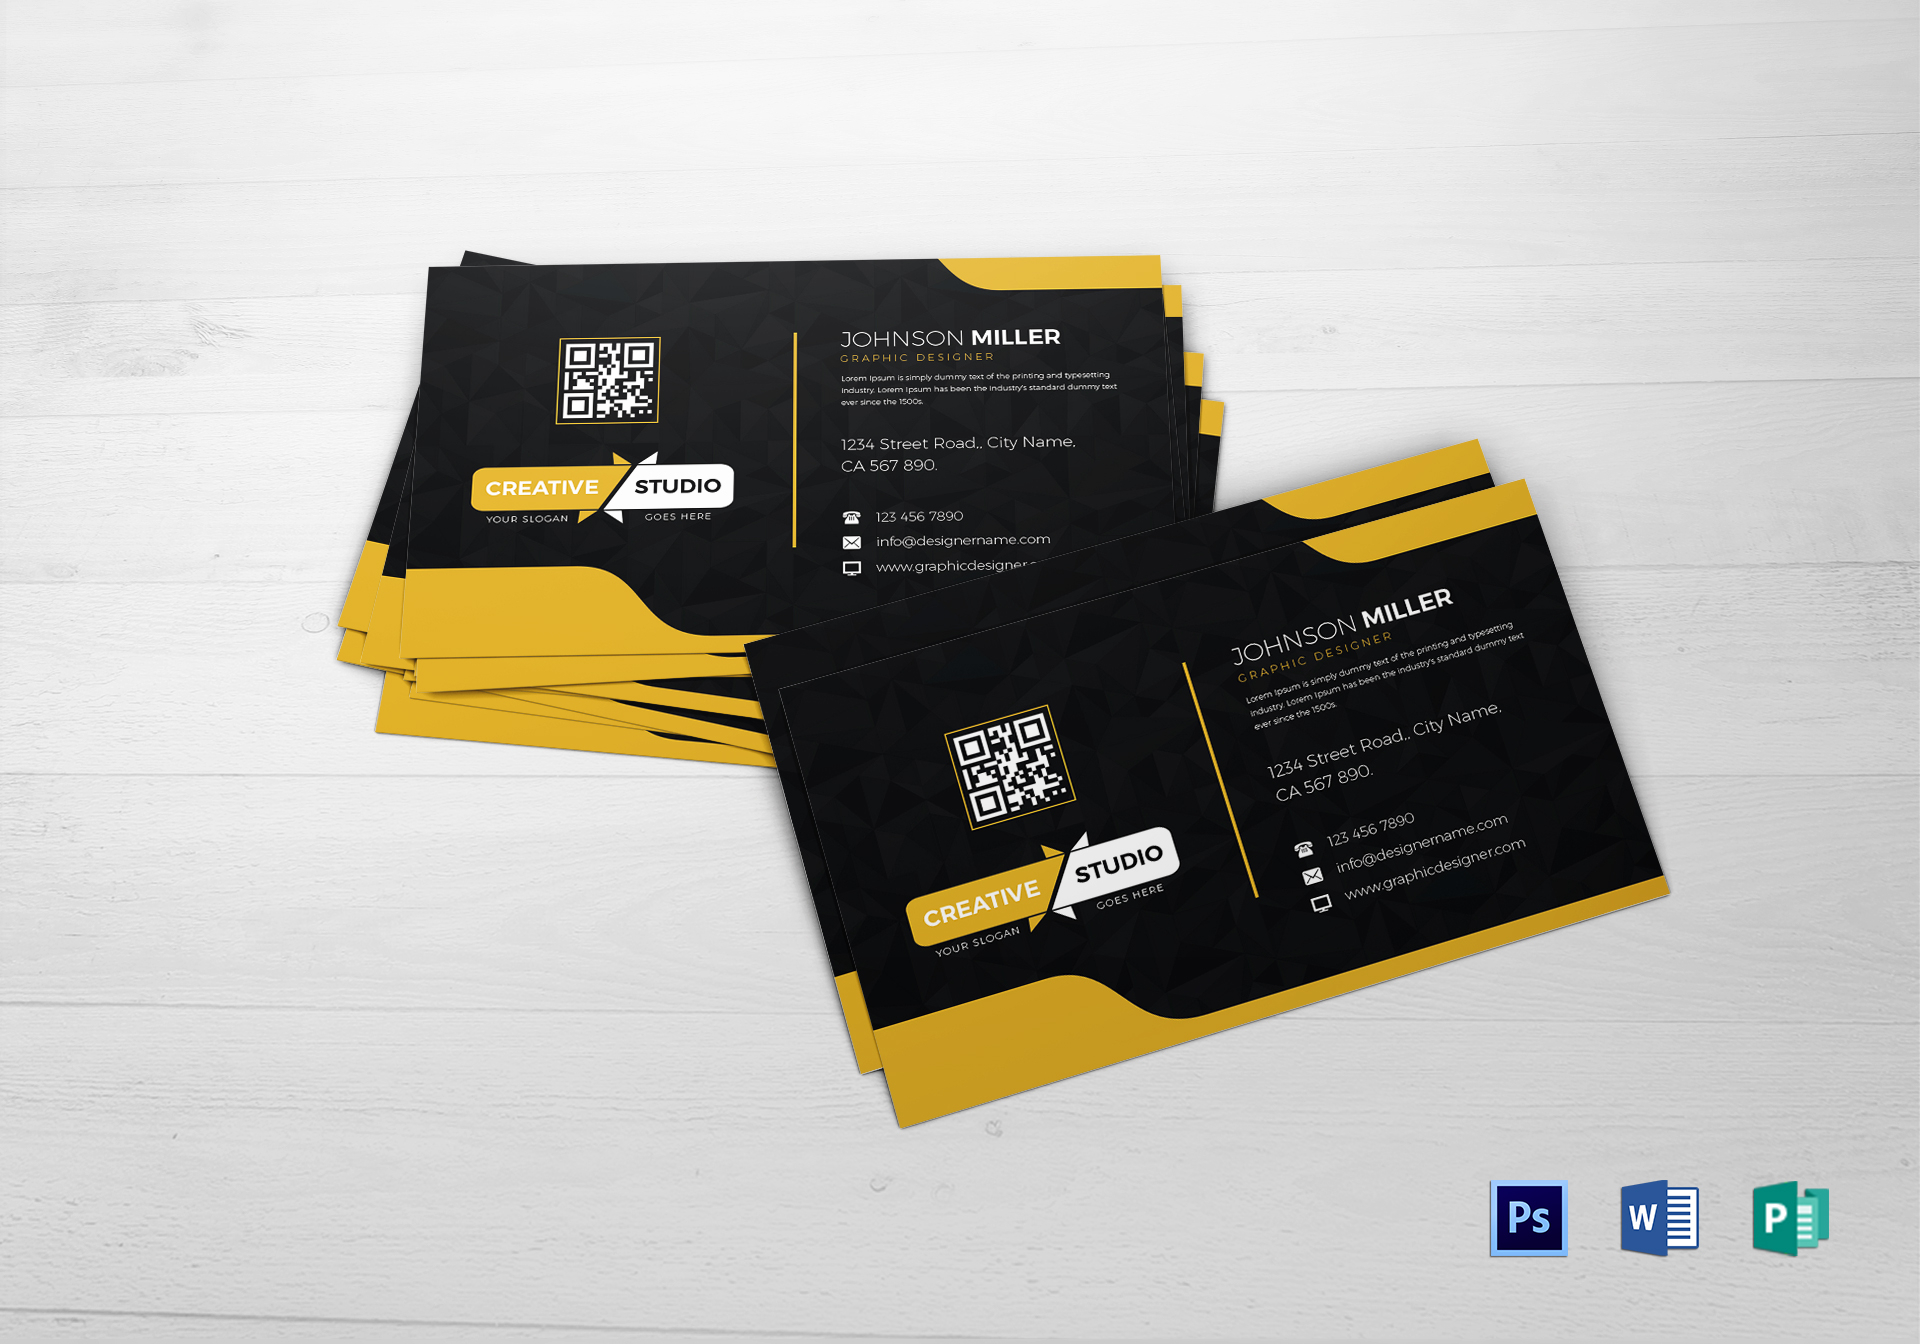 Graphic designer business card design template in psd word publisher graphic designer business card flashek Gallery